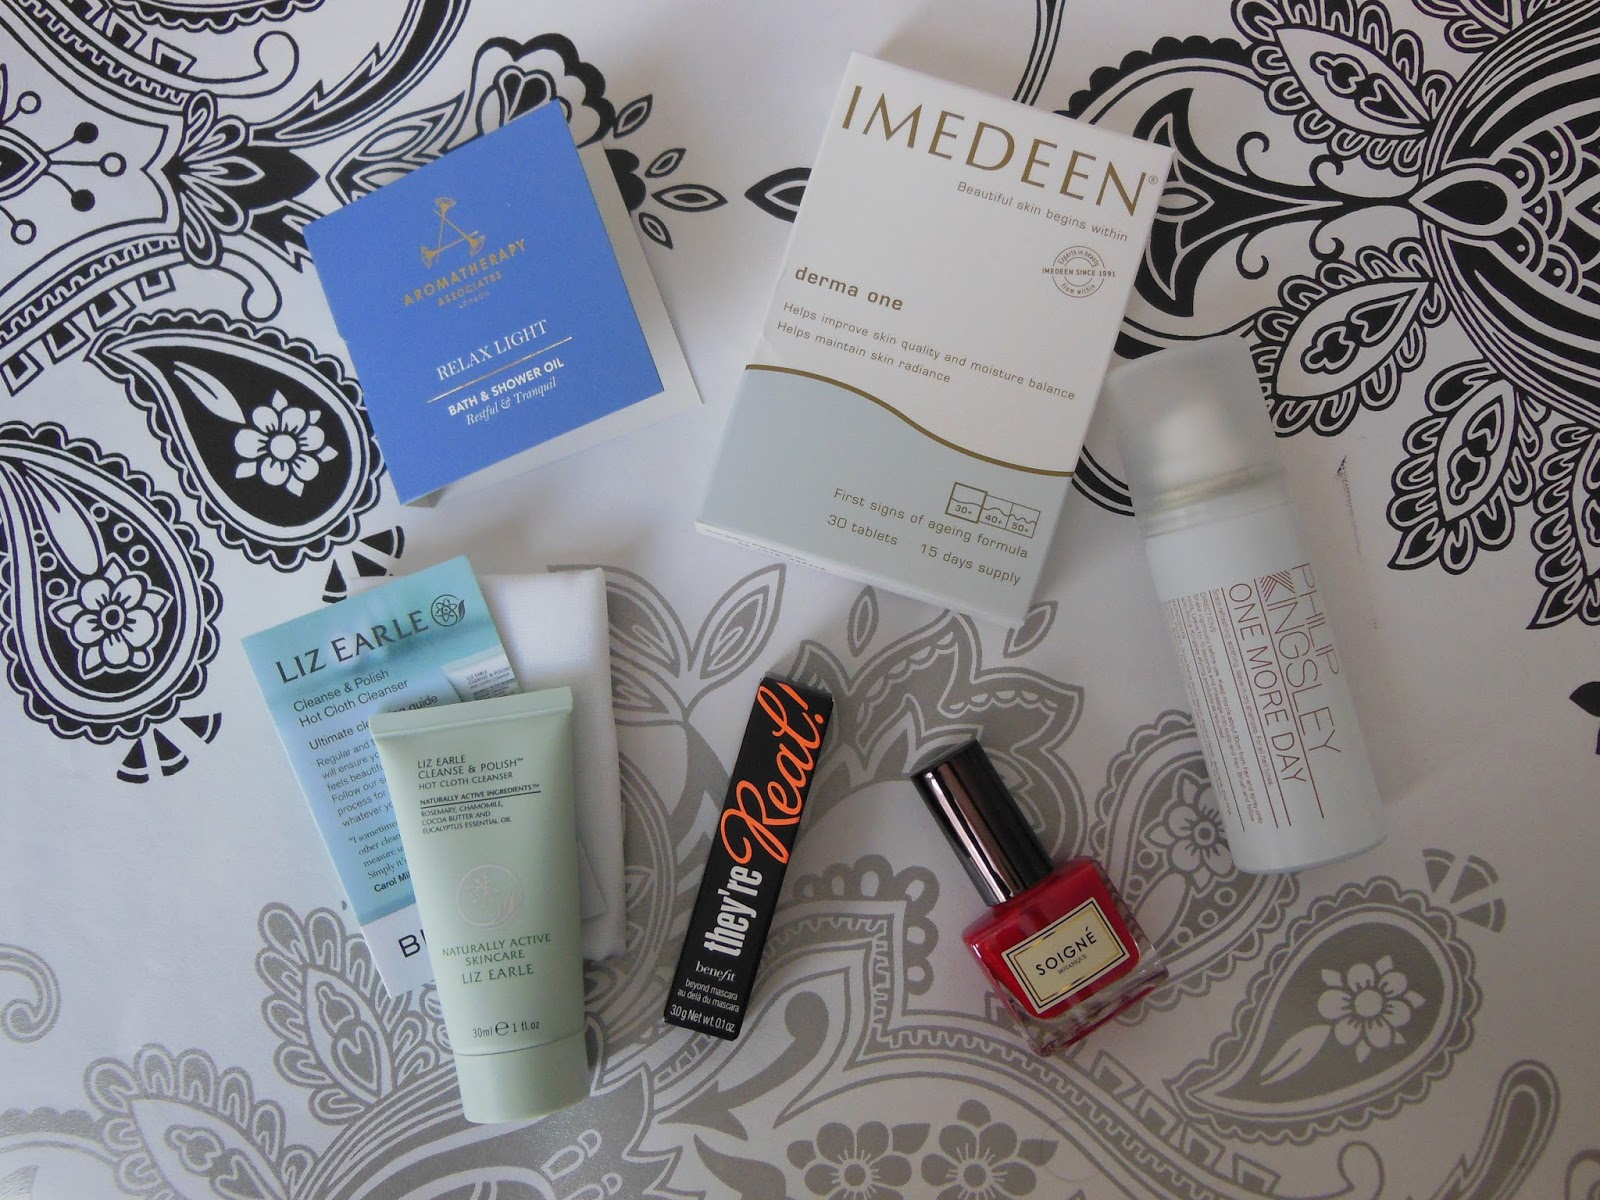 Harper's Bazaar Birchbox UK May 2014 contents